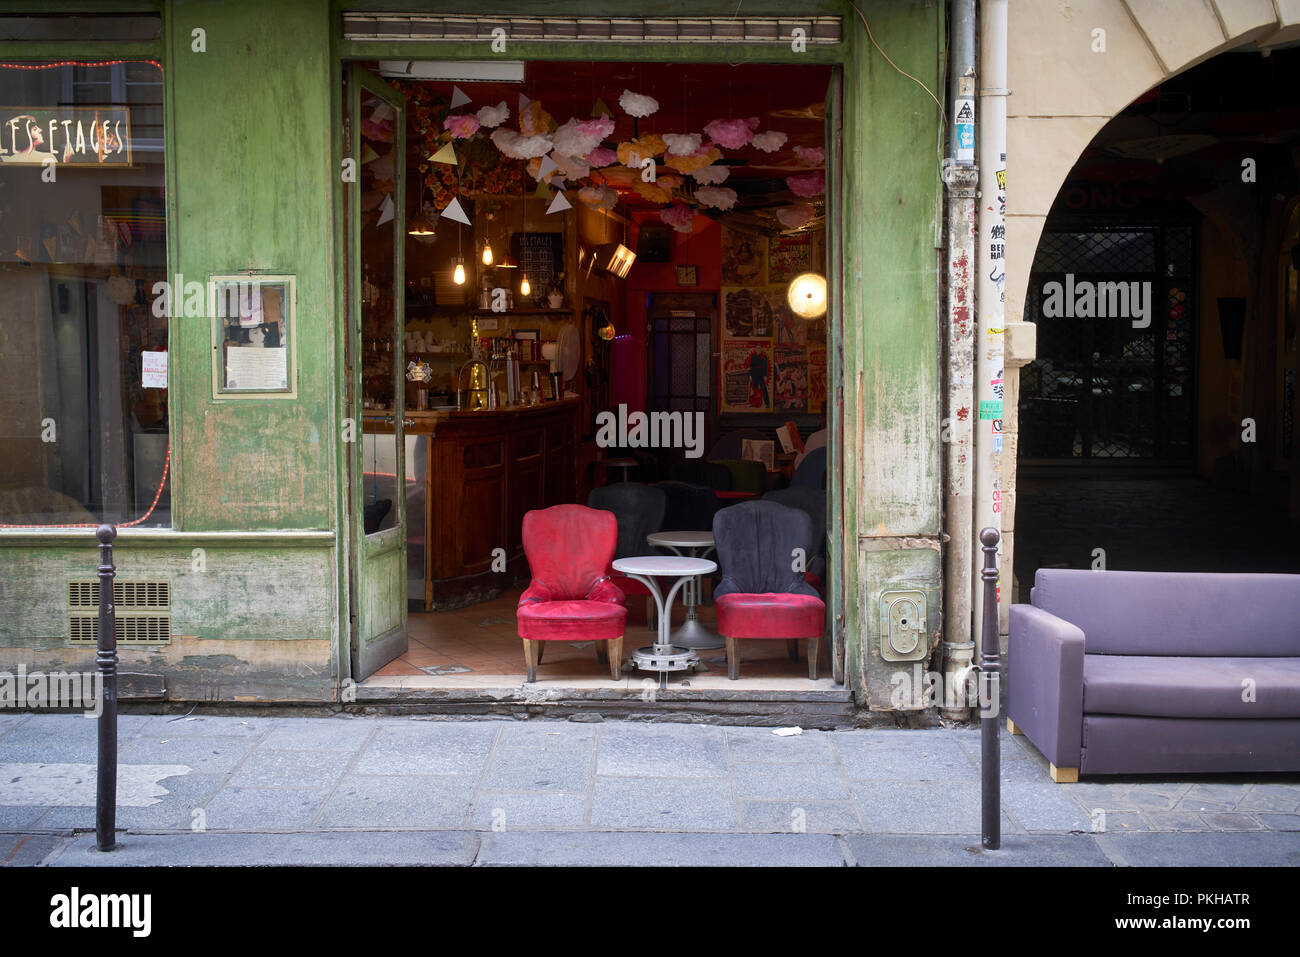 Chairs and sofa outside a bar in Le Marais area in Paris, France - Stock Image